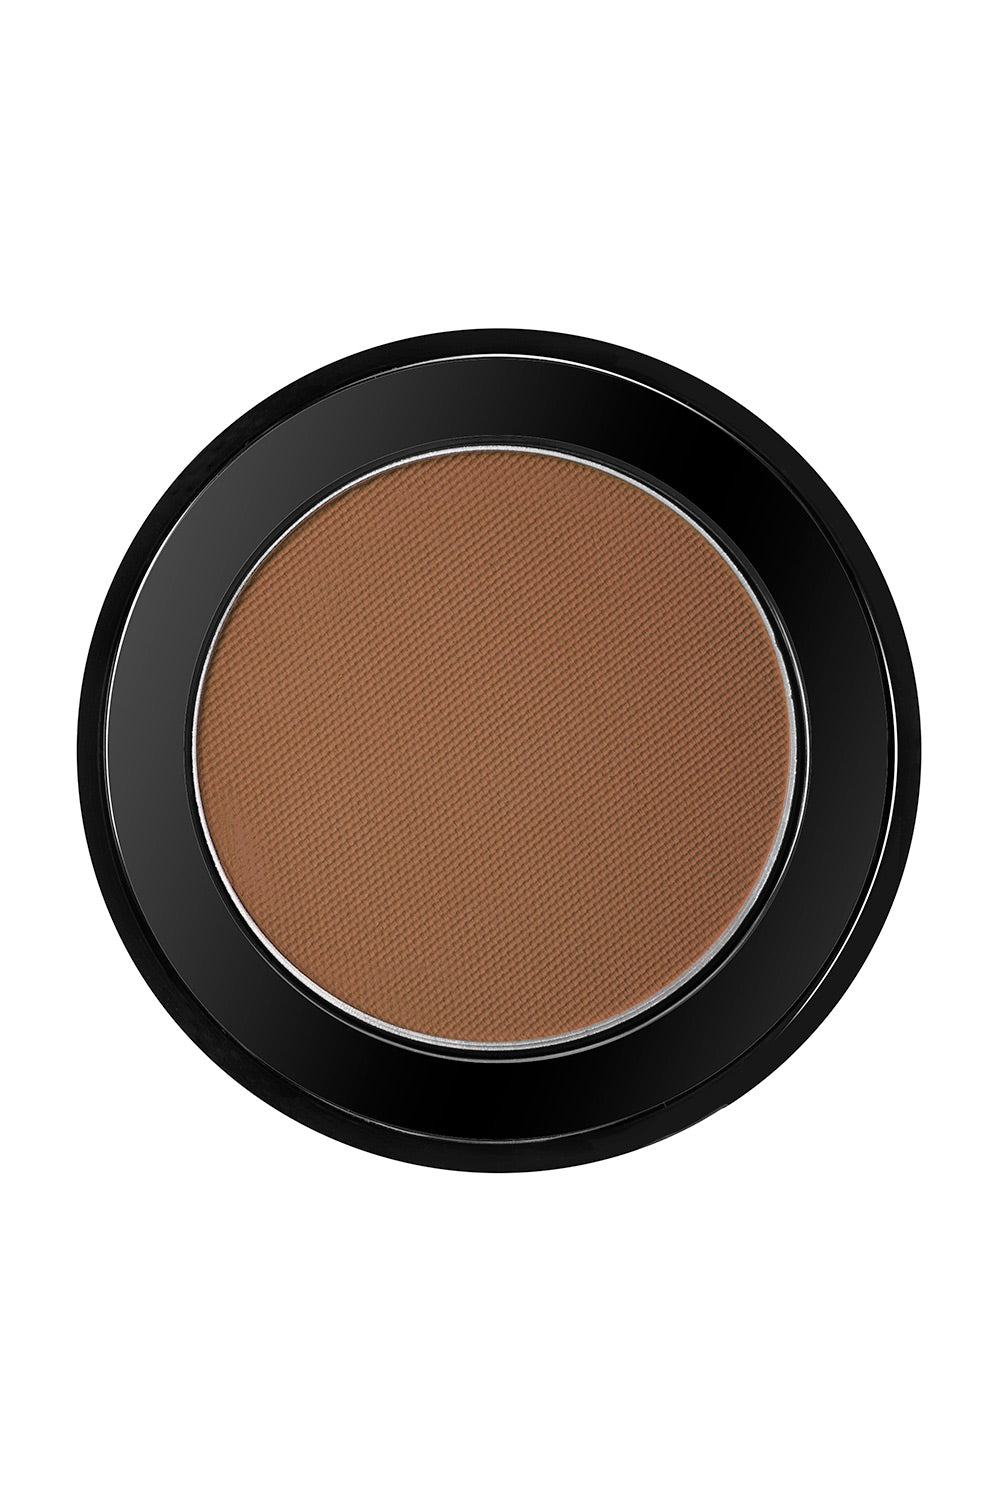 Type 3 Eyeshadow - Brown Bear